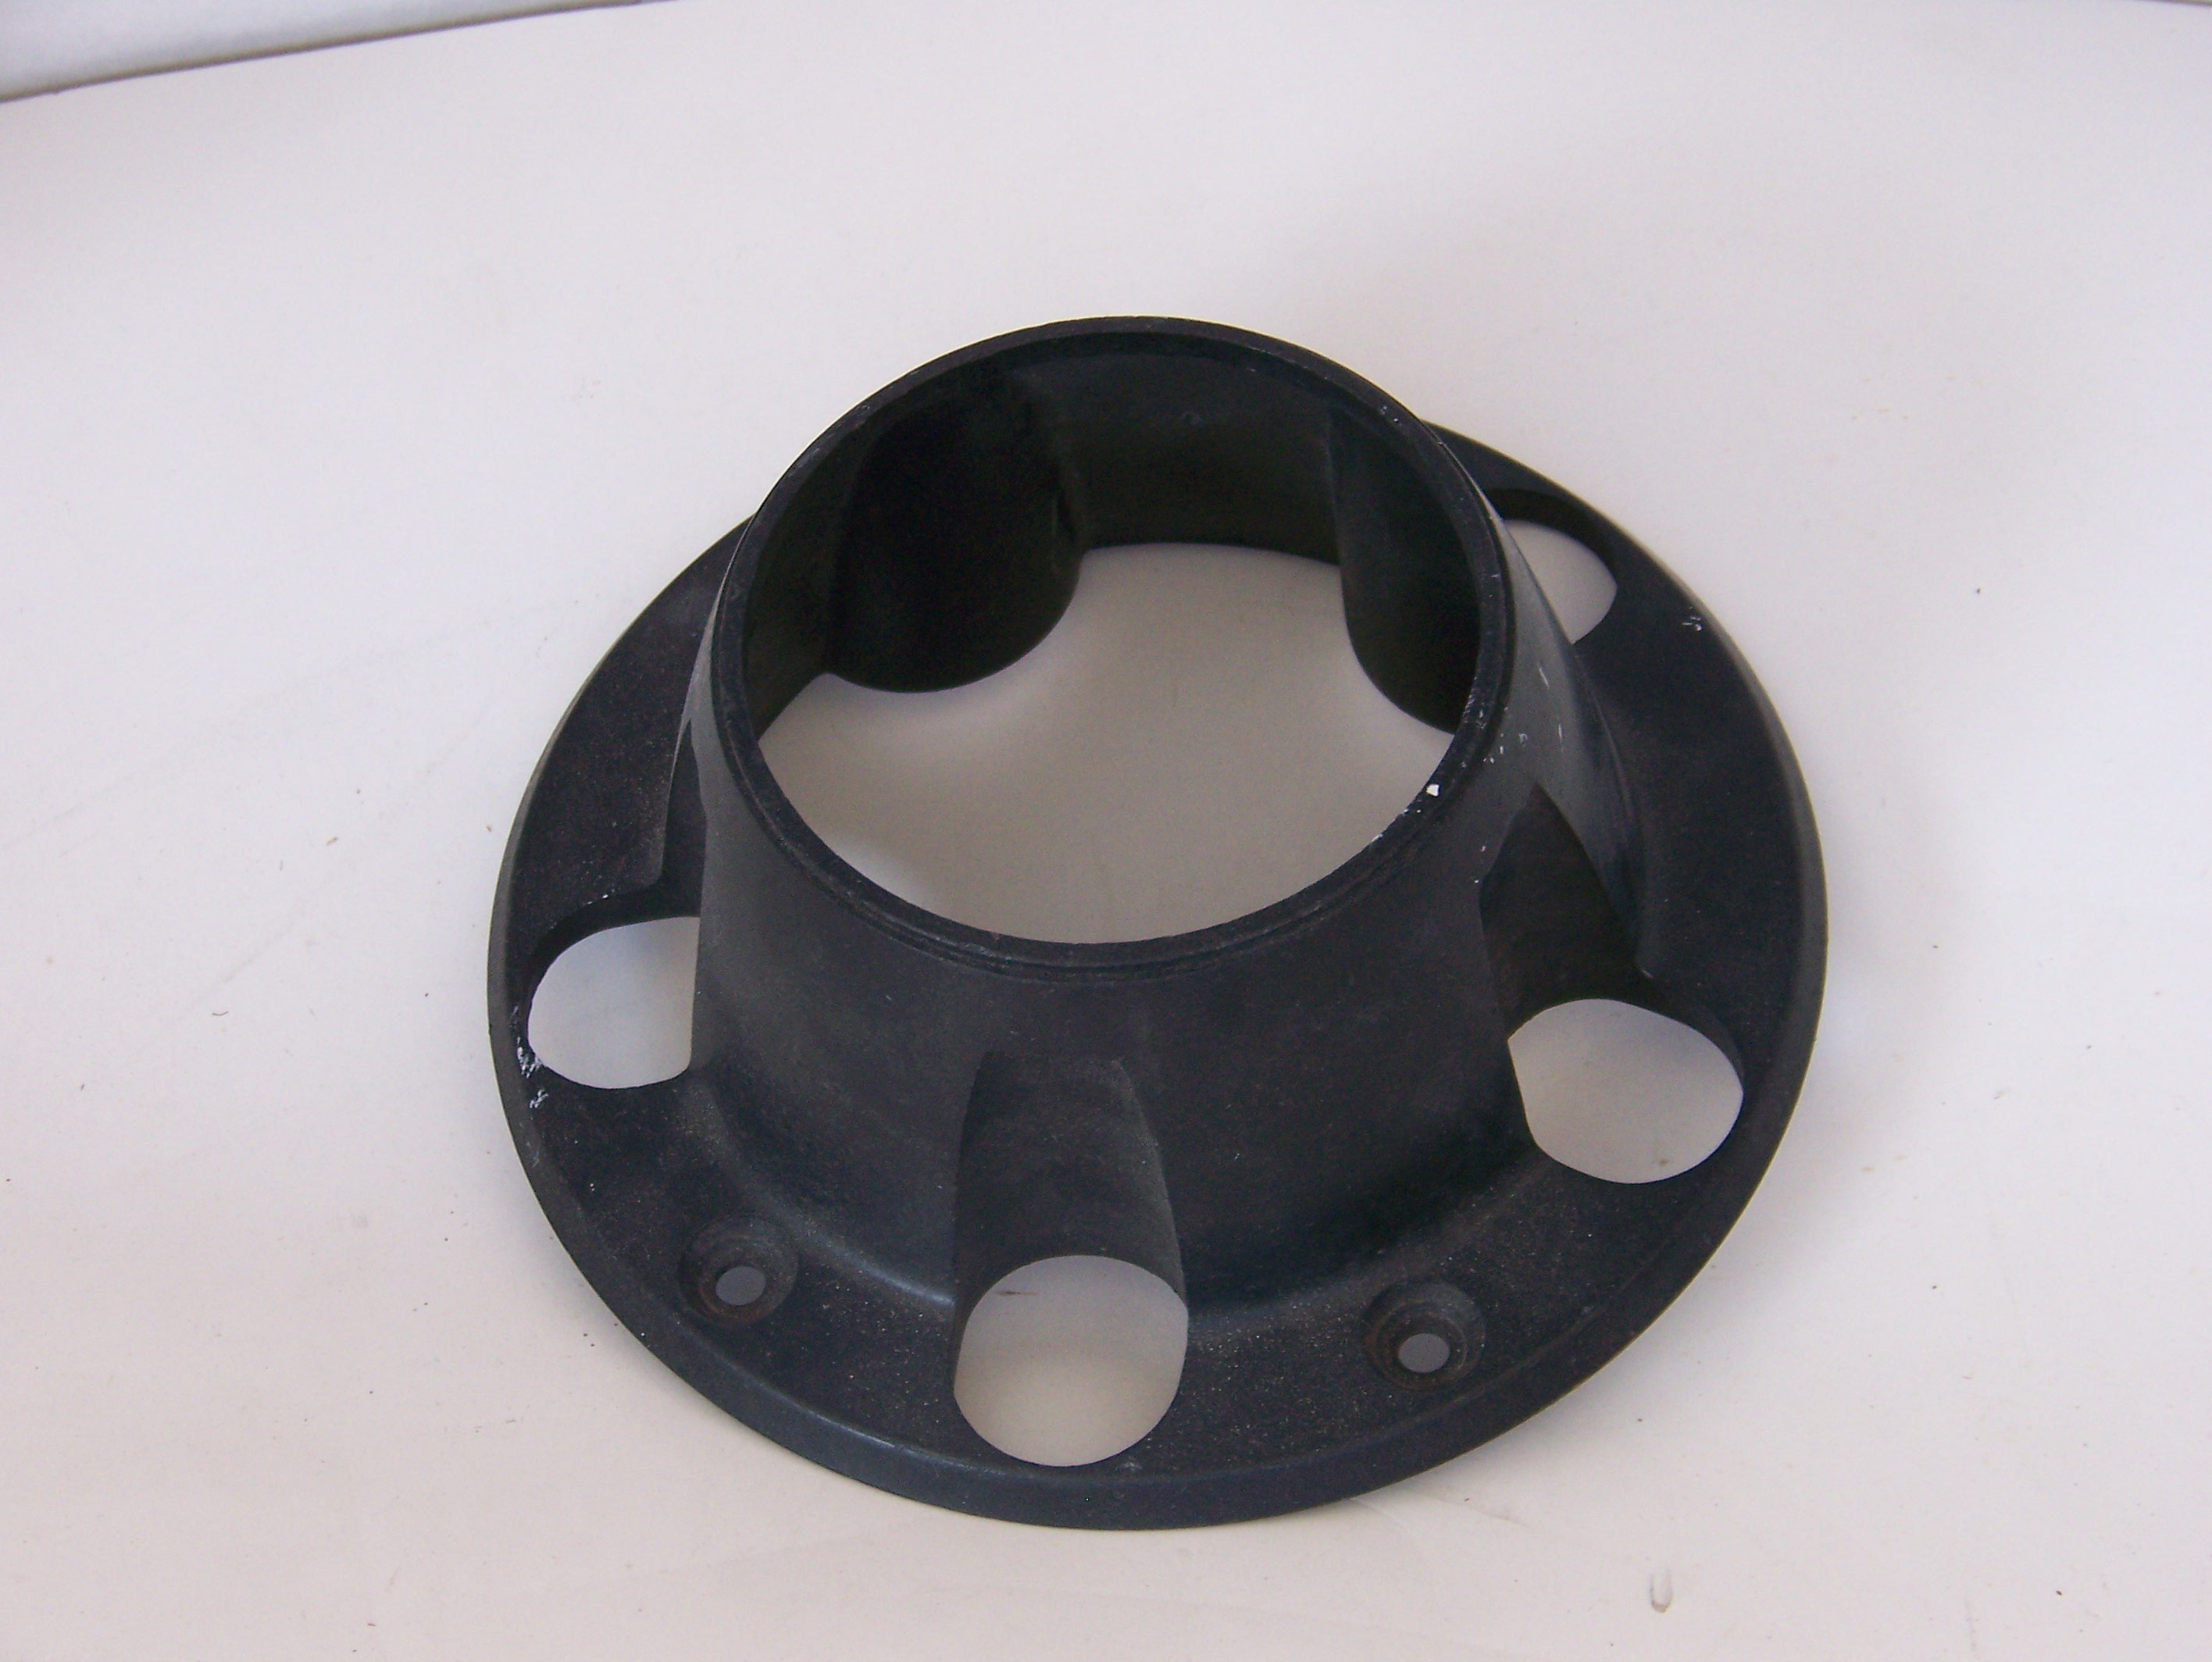 Ford F150 Bronco 78-91 Front 4x4 Black Center Cap 1092 P/N TA-1A096-BA